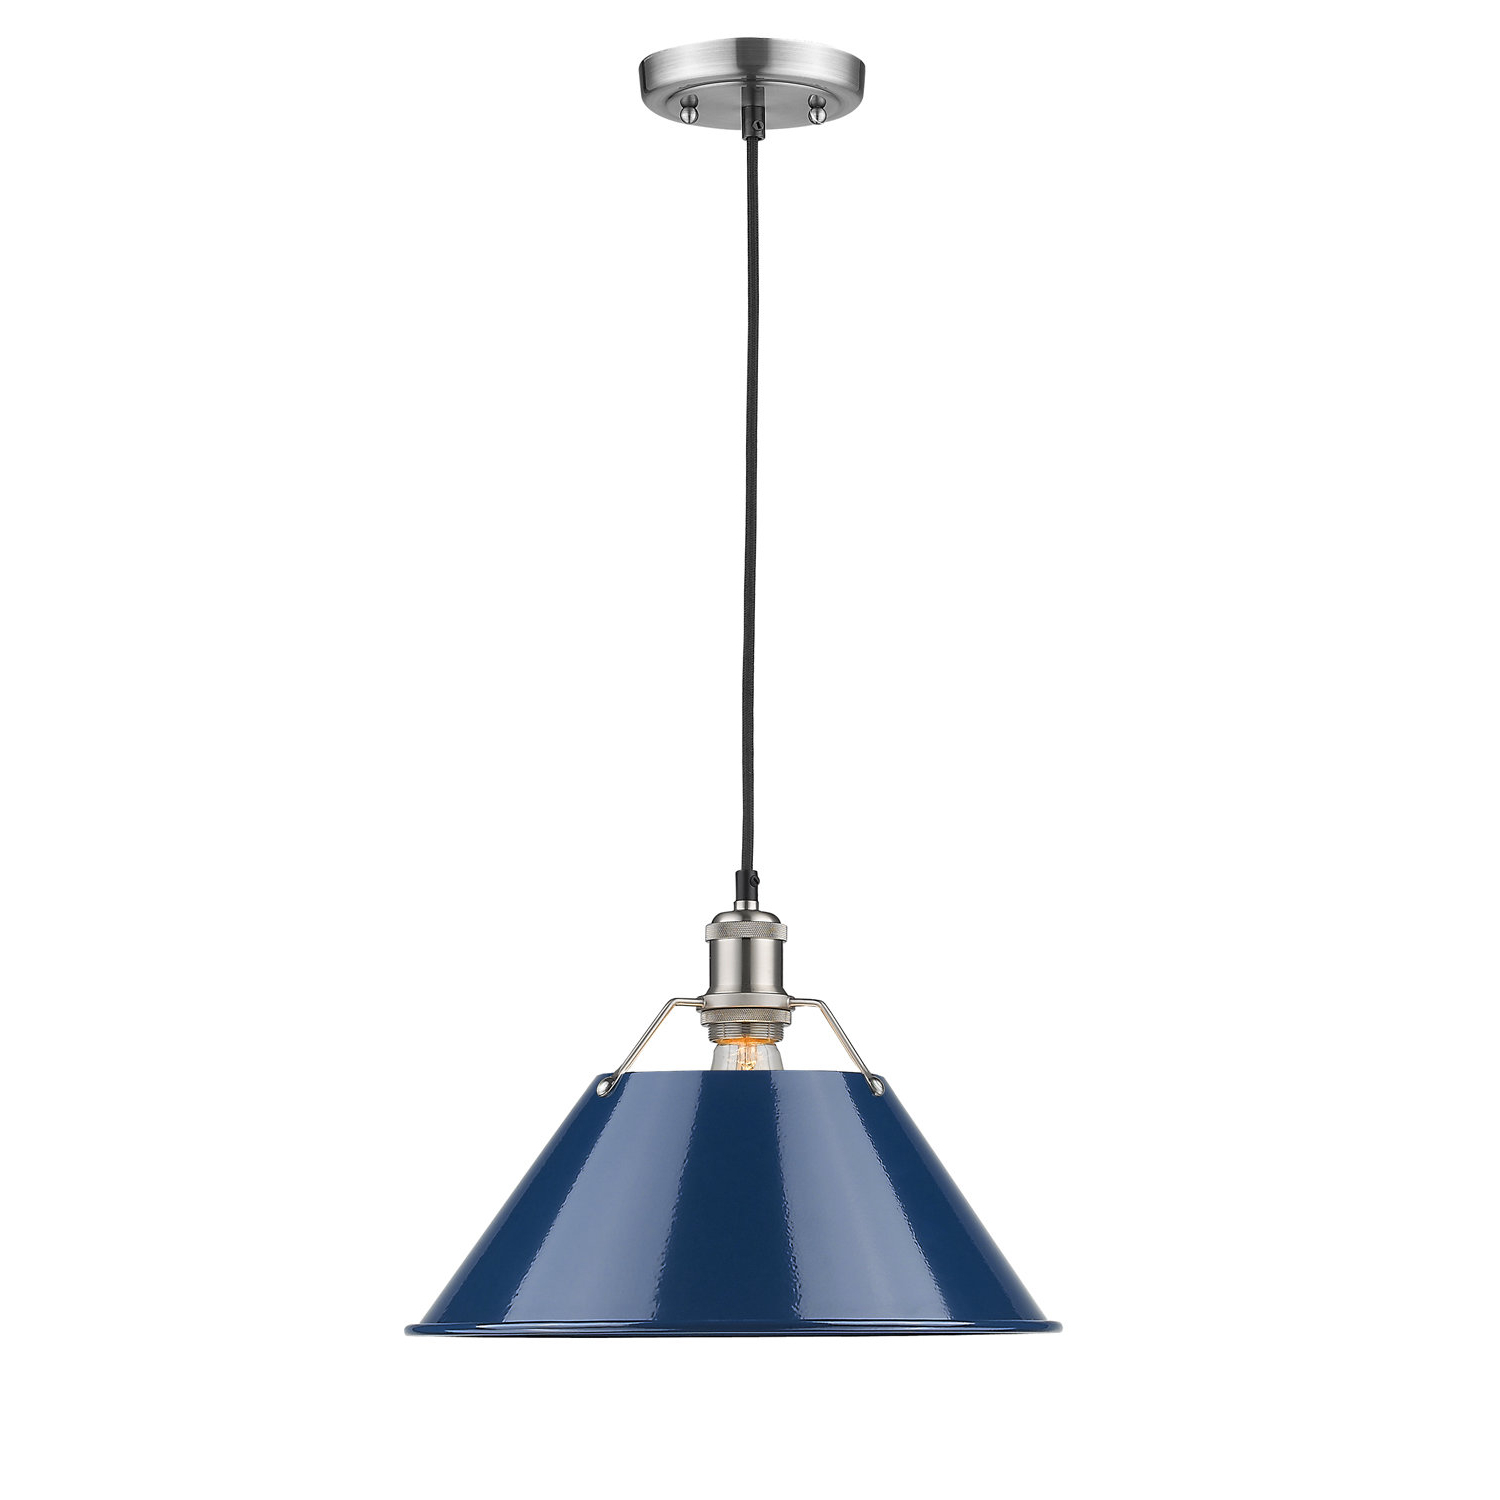 Weatherford 1 Light Single Cone Pendant For Most Popular Nadeau 1 Light Single Cone Pendants (View 11 of 25)